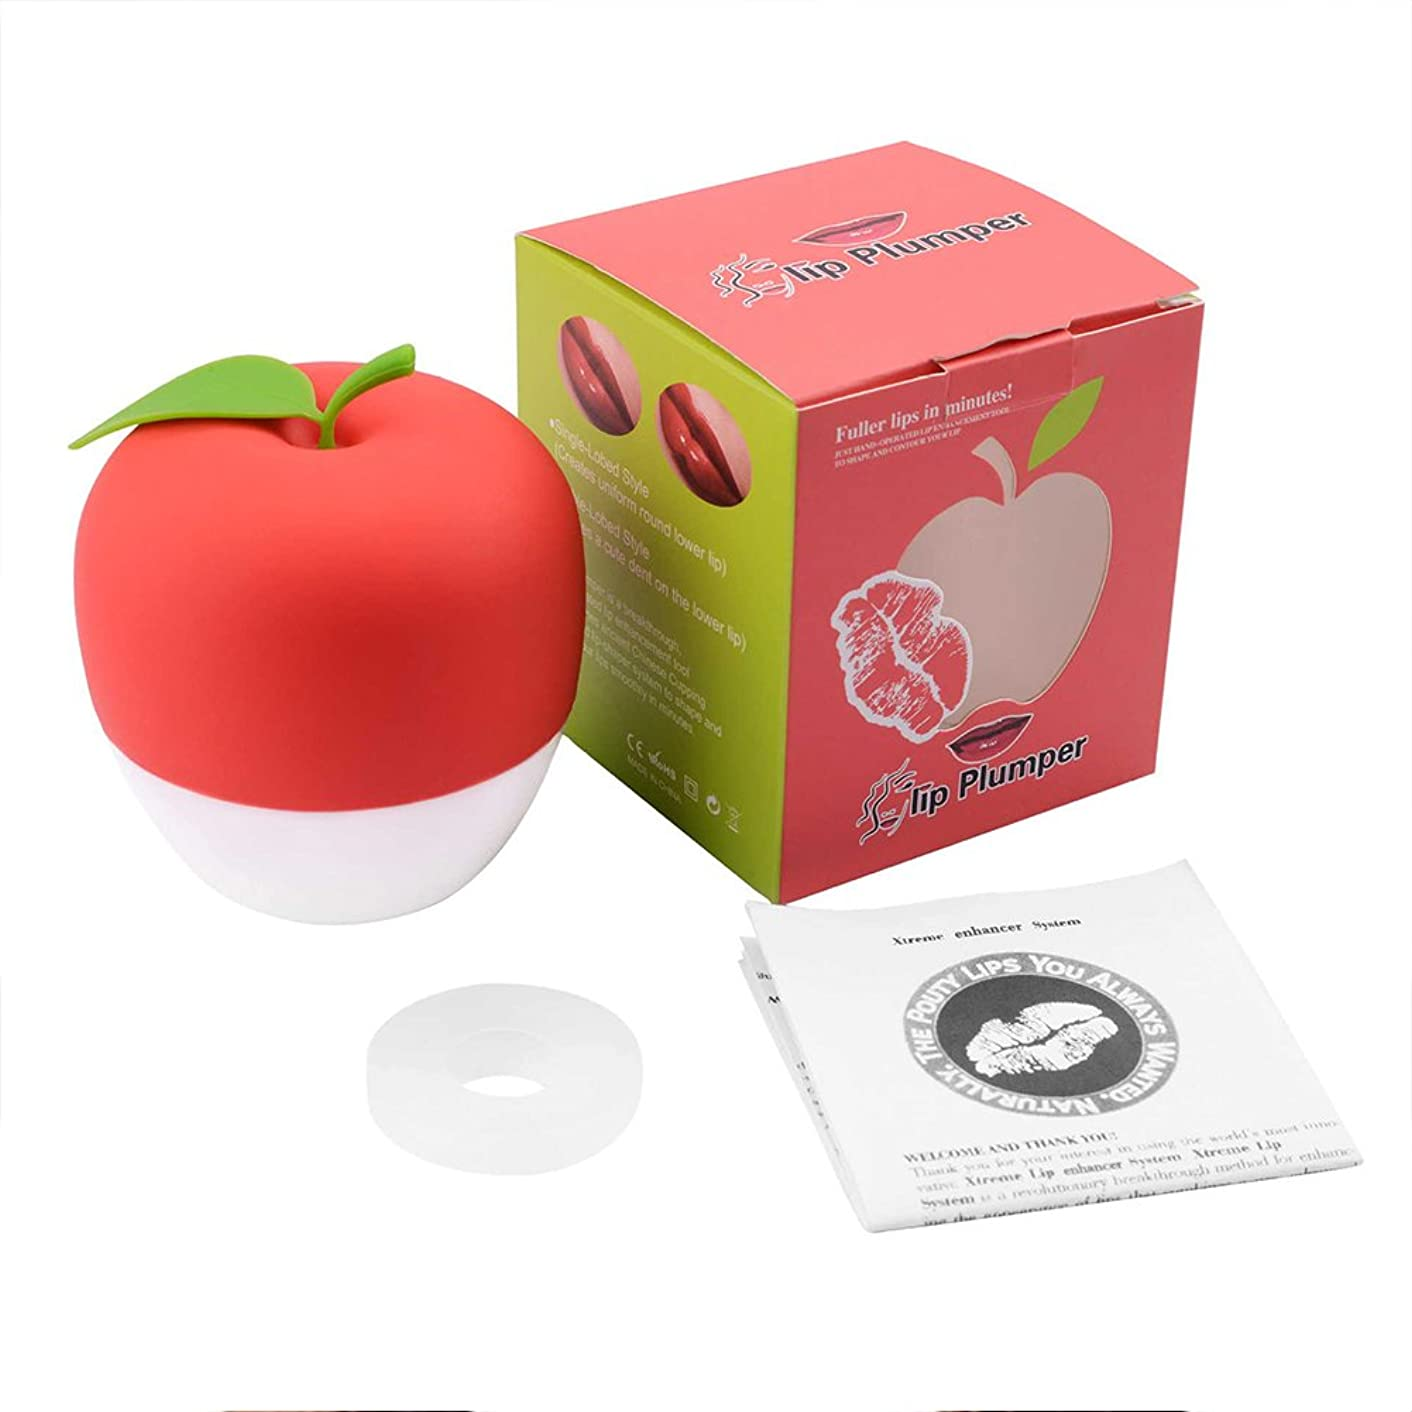 Yiwa Women Sexy Mouth Beauty Tool Green Double or Red Single Lobbed Lips Pump Device Quick Lip Plumper Enhancer